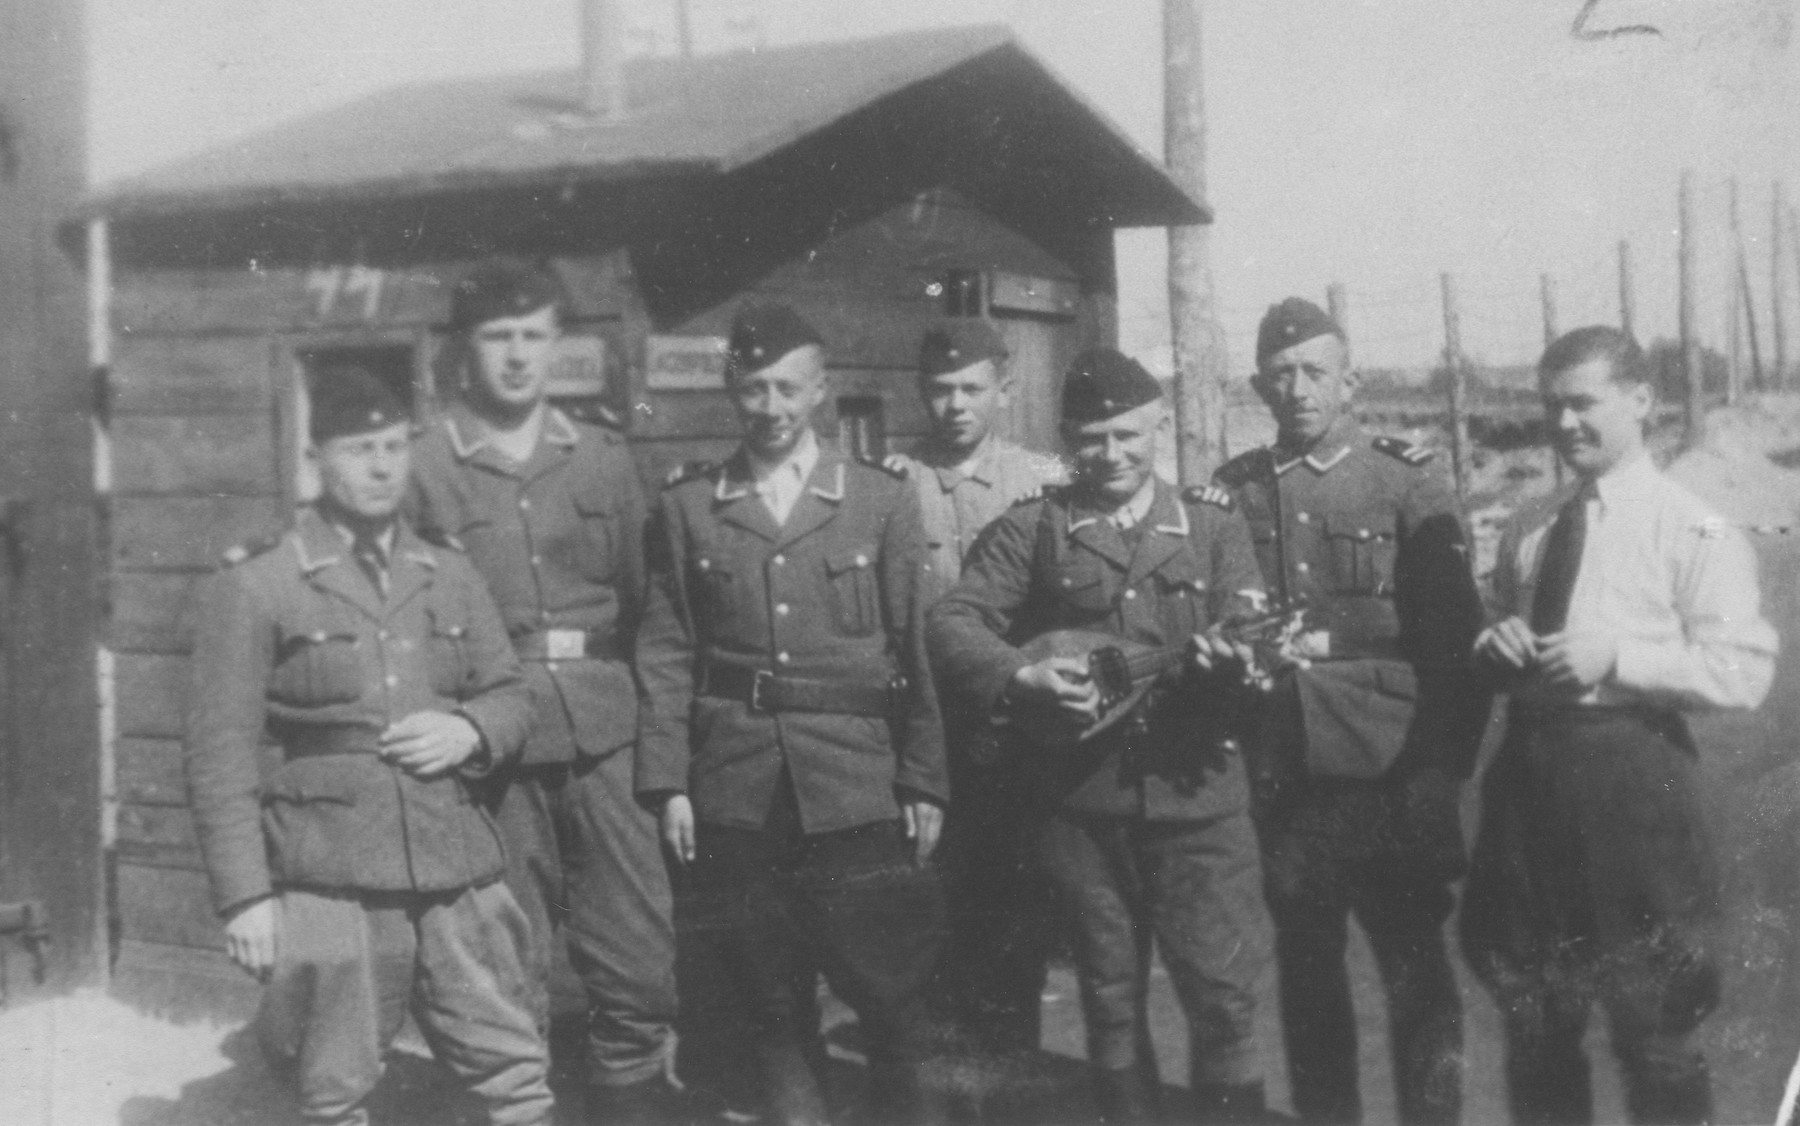 Group portrait of ethnic German guards at the Belzec concentration camp, one of whom plays a mandolin.    Pictured from left to right are: Trautwein, Samuel, Rosenholz and Kunz.  These ethnic Germans served as officers in the Trawniki guard unit in the Belzec concentration camp.